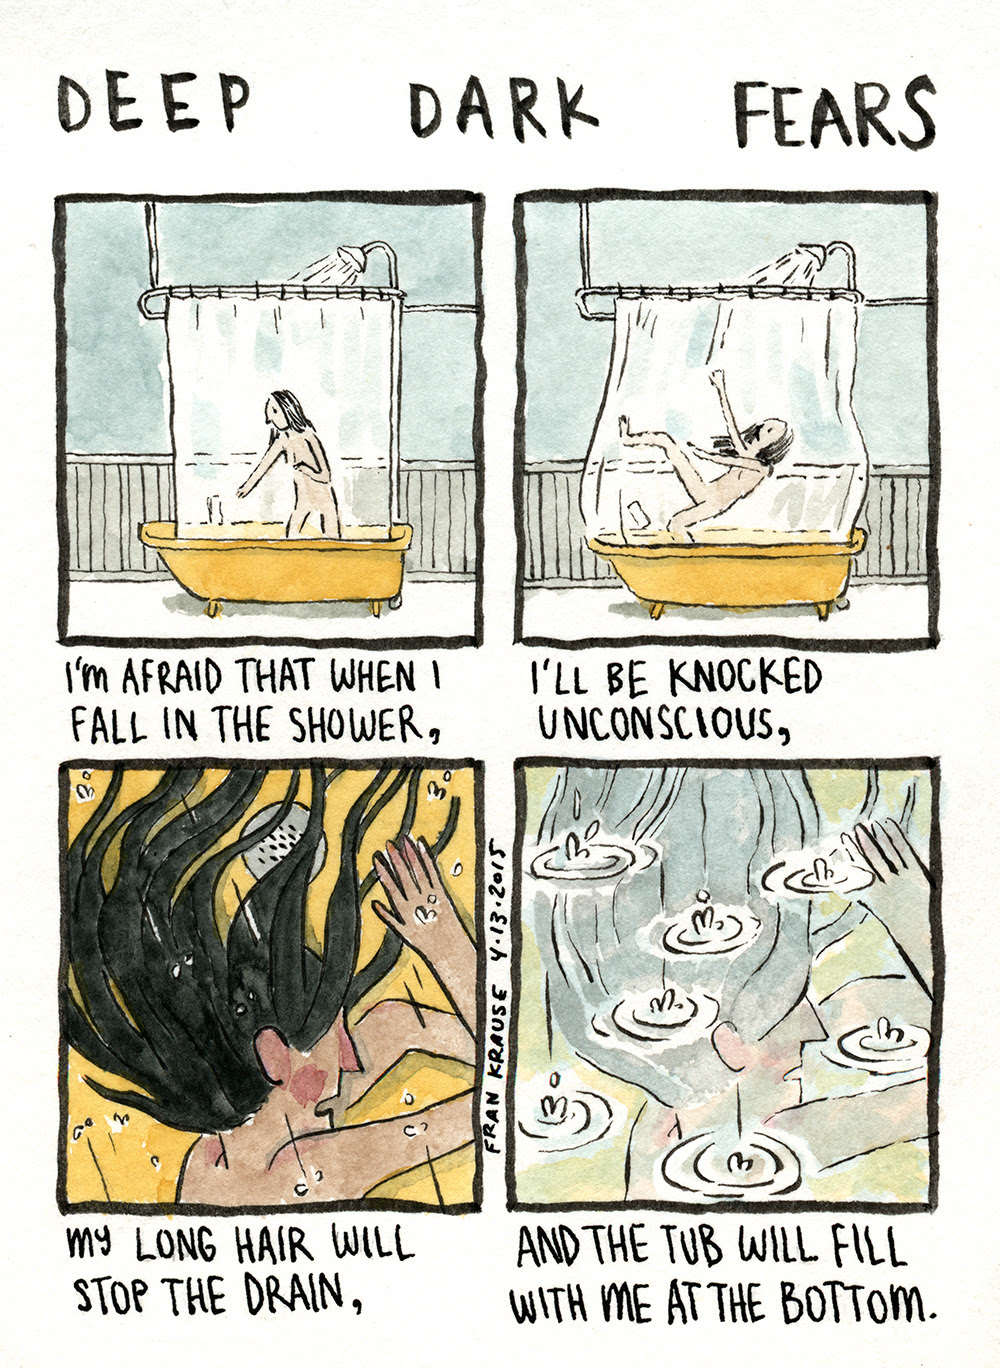 A fear submitted by Annie to deep dark fears. Thanks!